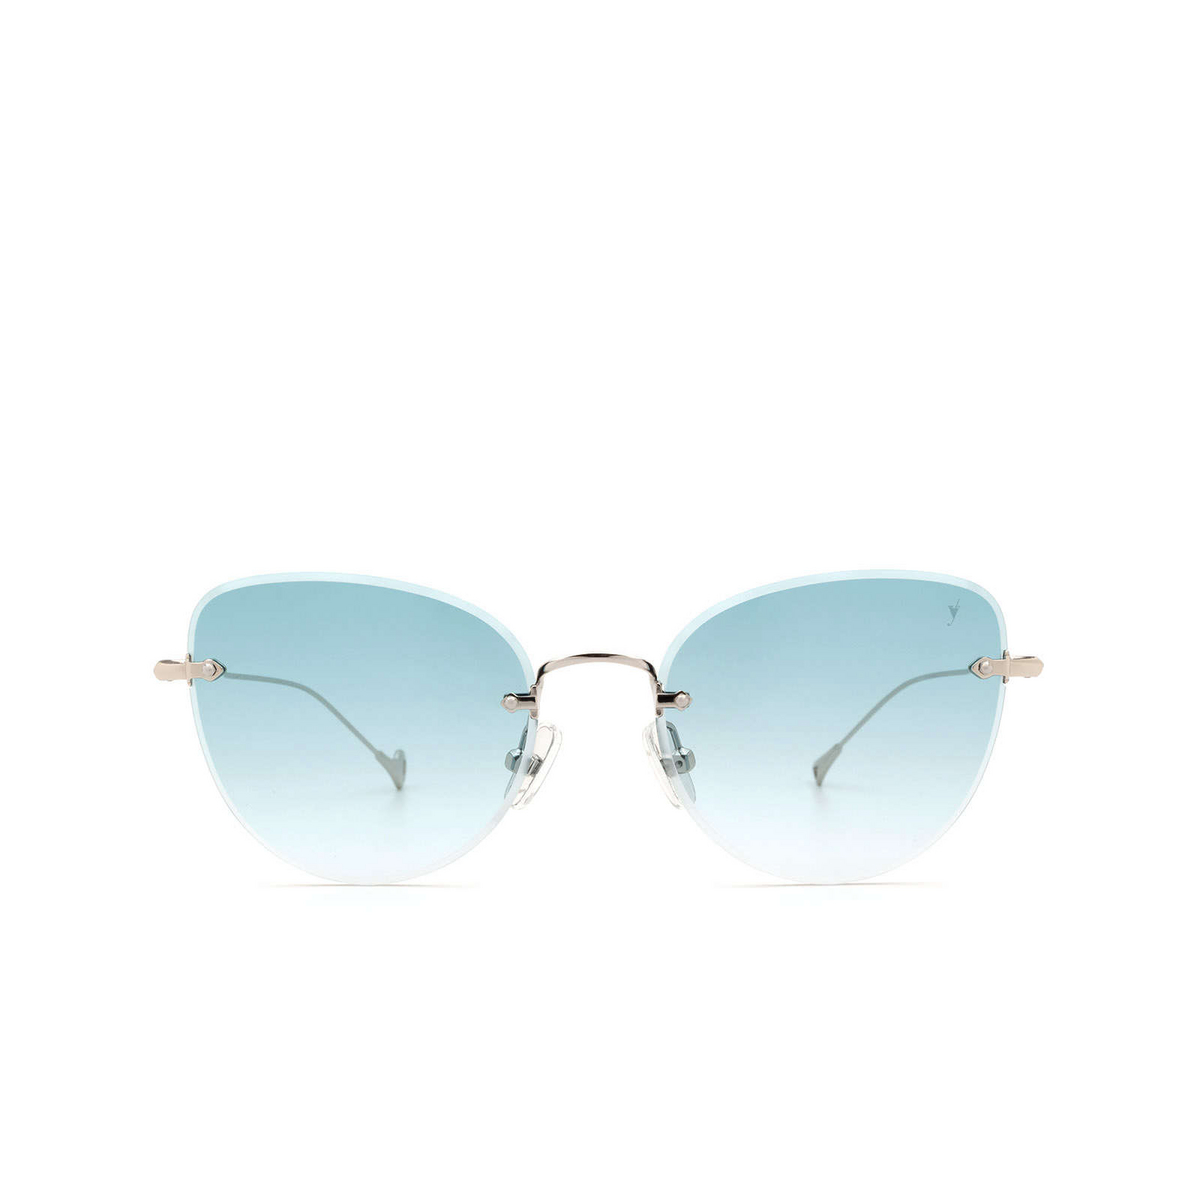 Eyepetizer® Butterfly Sunglasses: Liz color Silver C.1-21 - front view.